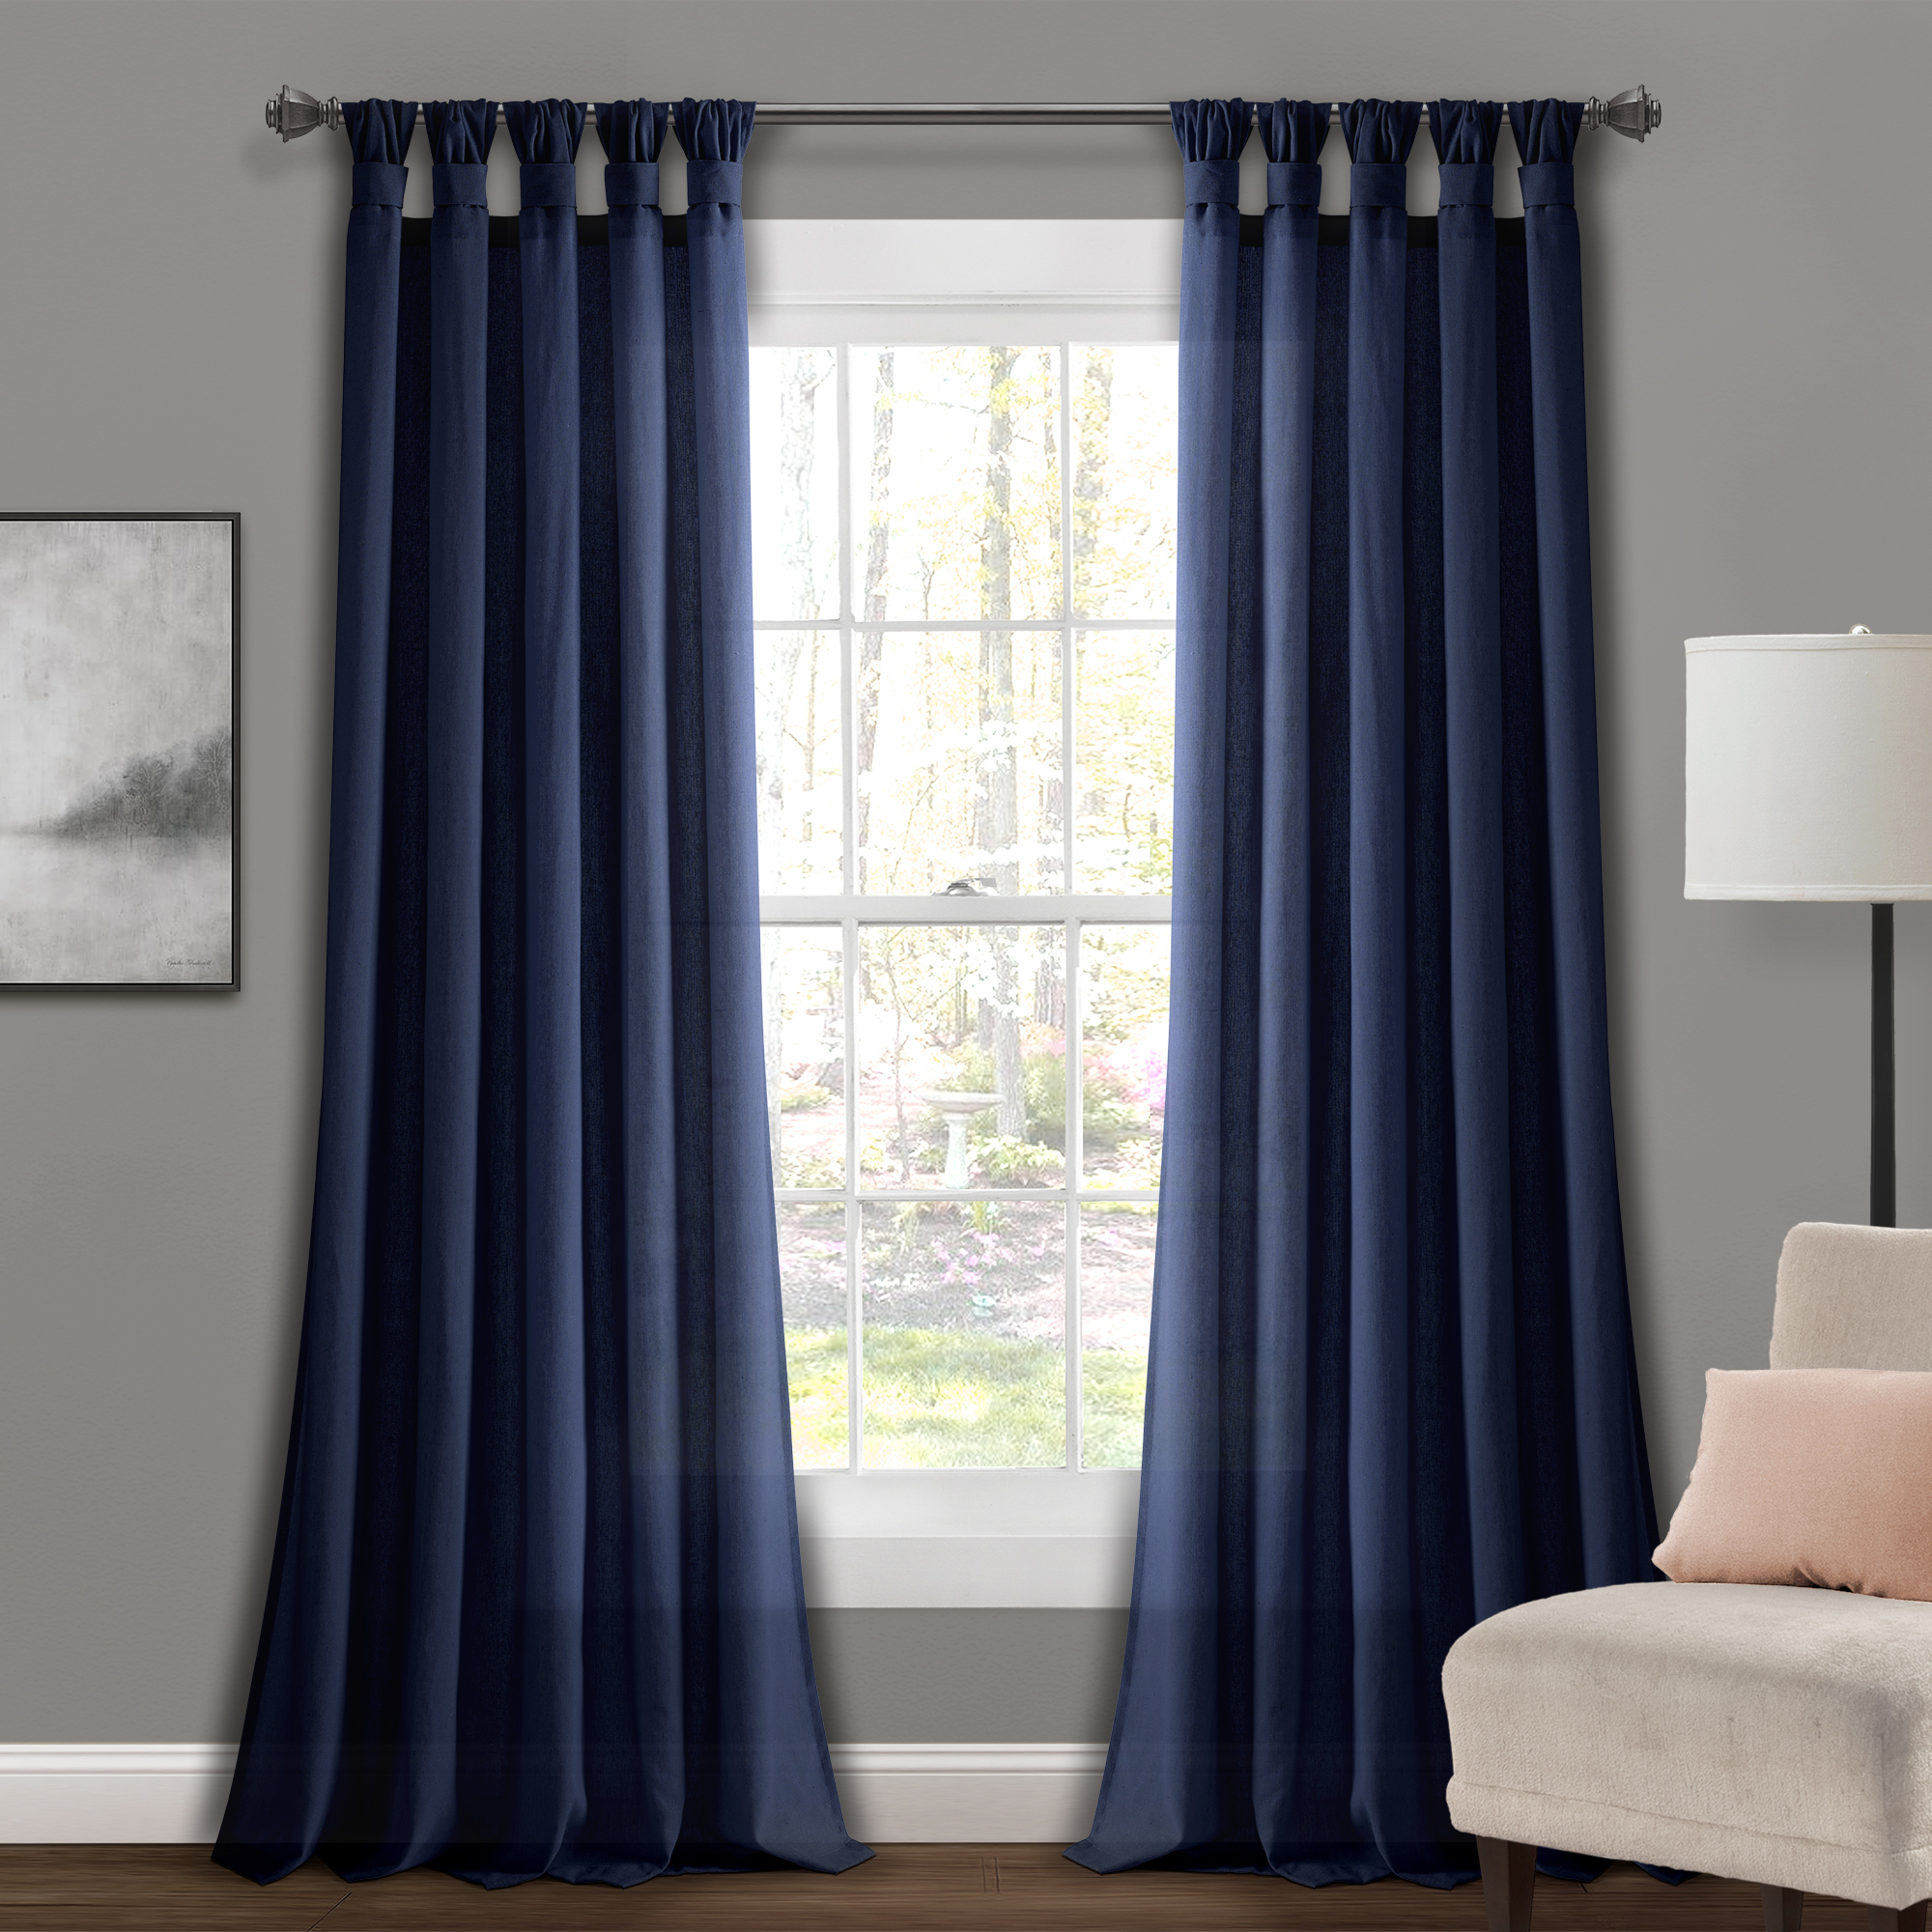 Details About Burlap Knotted Tab Top Window Curtain Panels Dark Linen Pair 45x84 Set With Regard To Knotted Tab Top Window Curtain Panel Pairs (View 5 of 20)